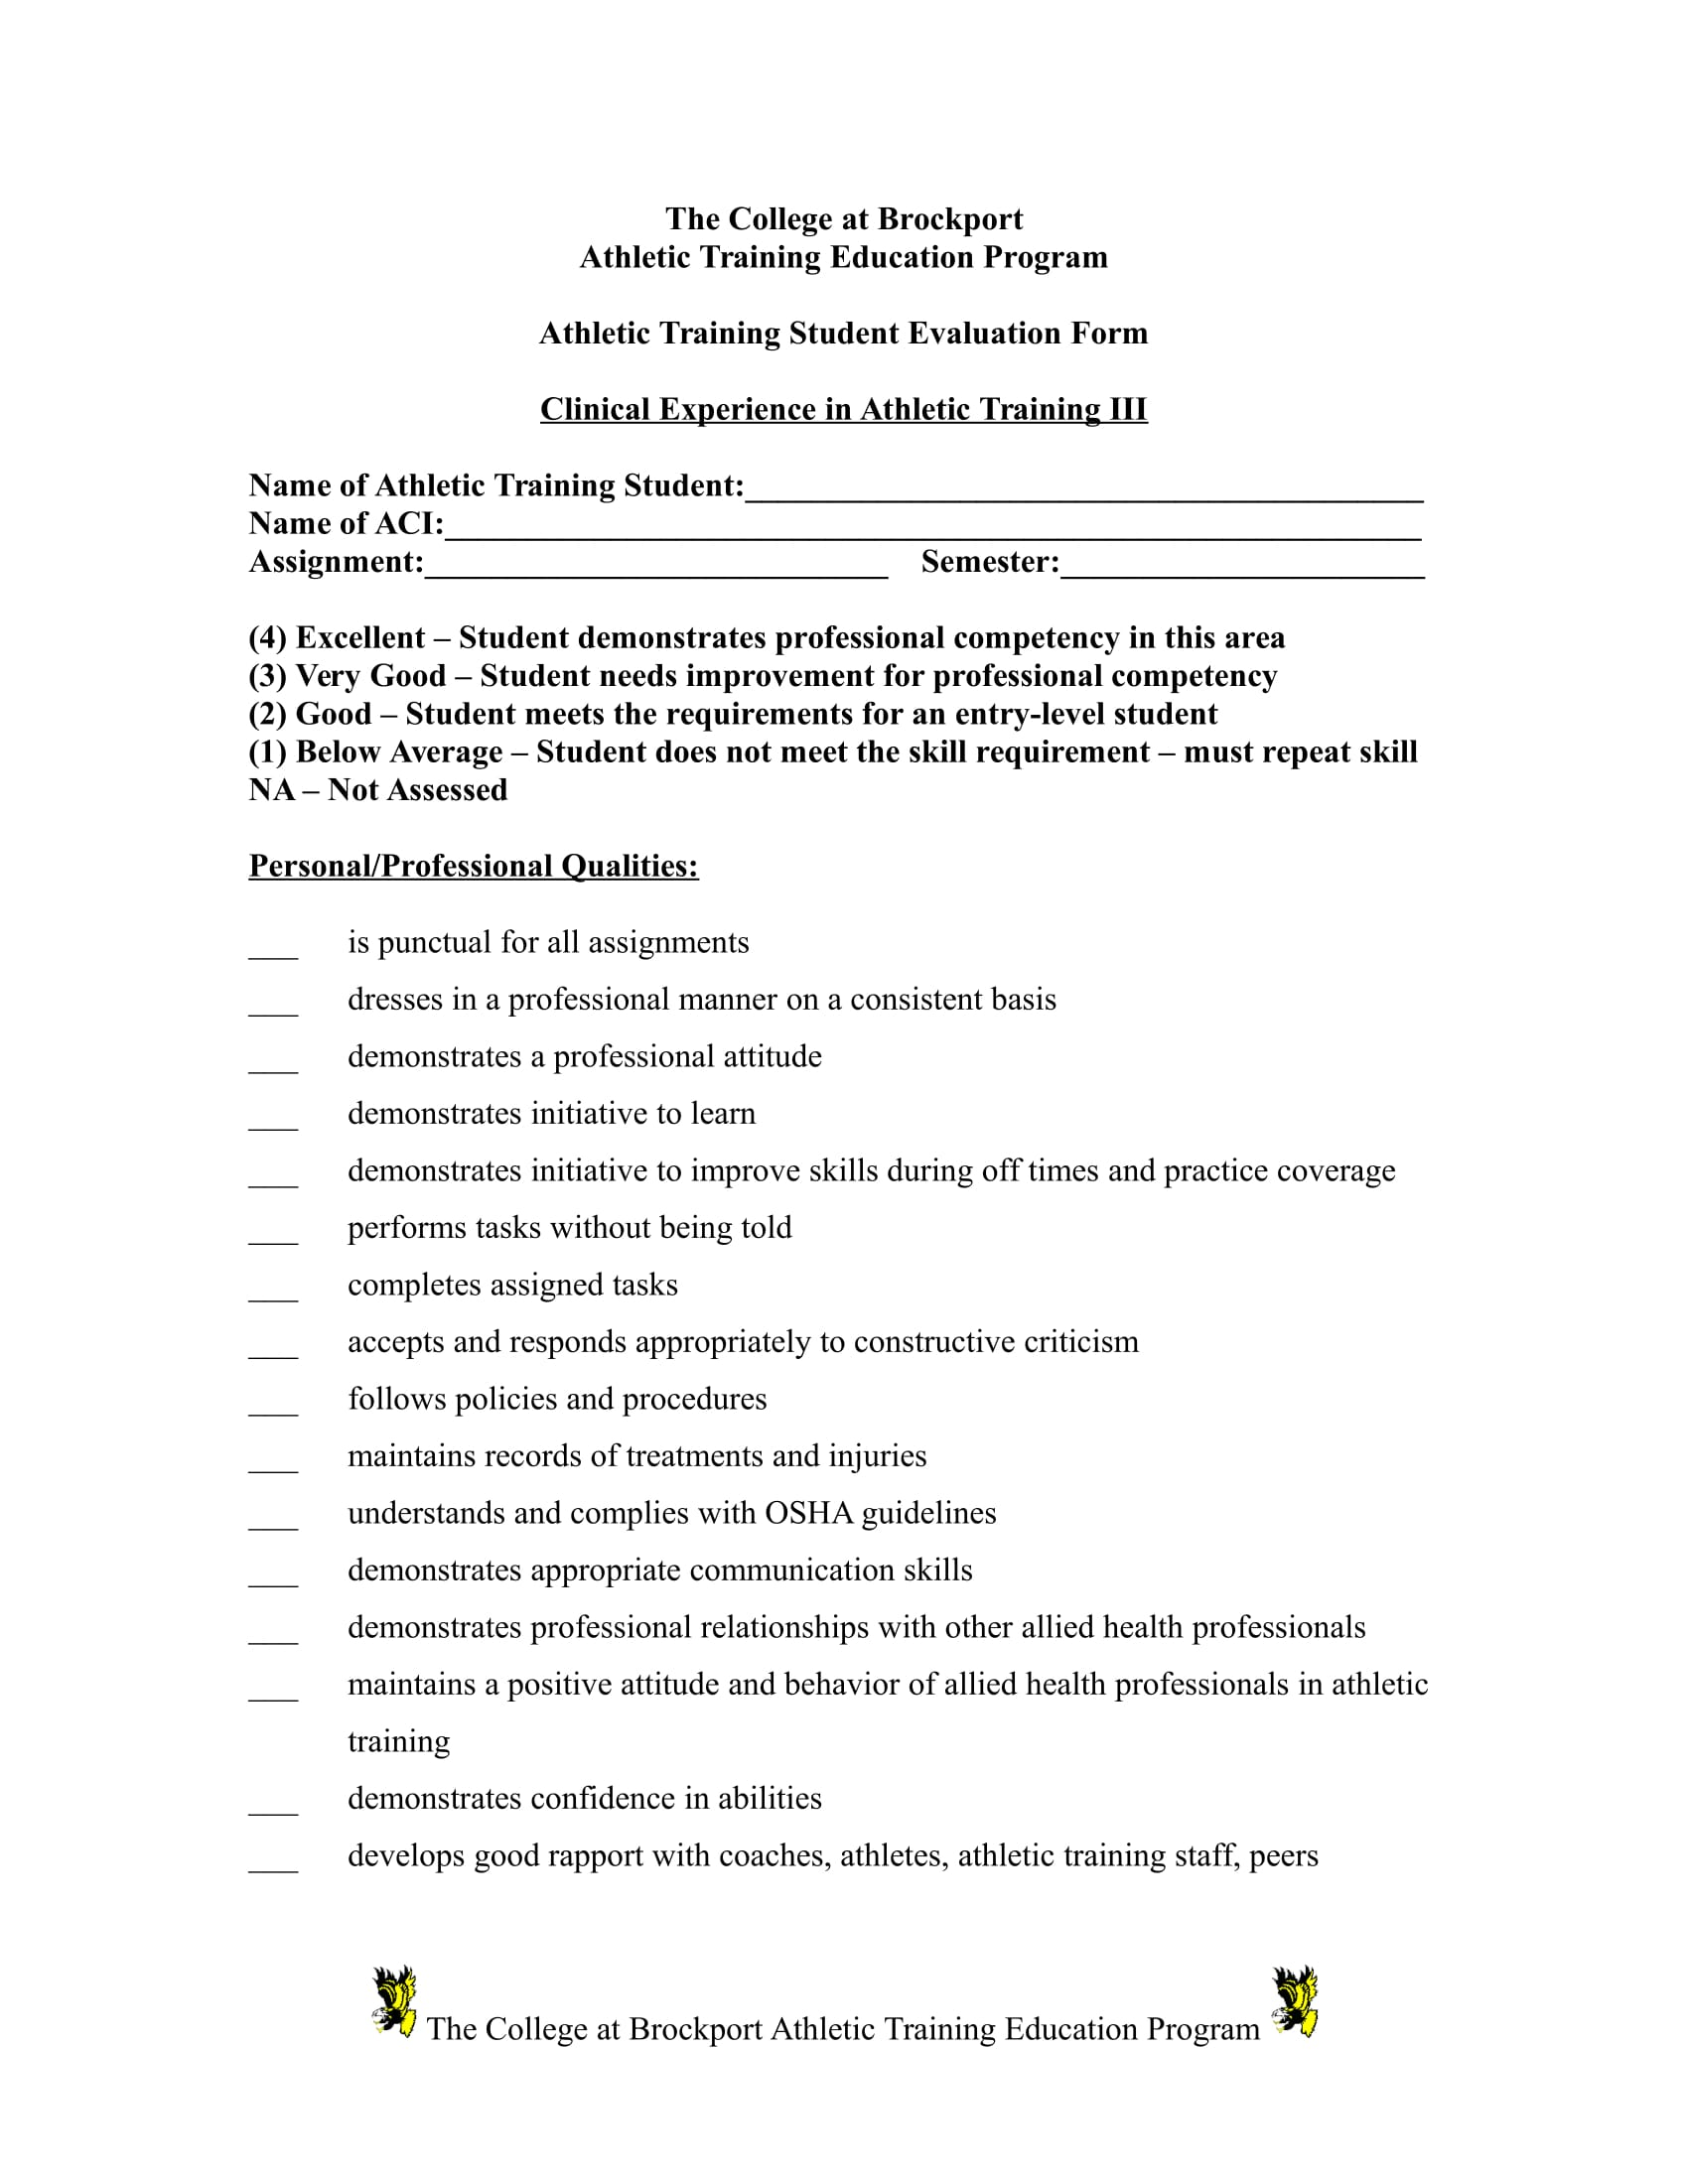 athletic training evaluation form word format 1